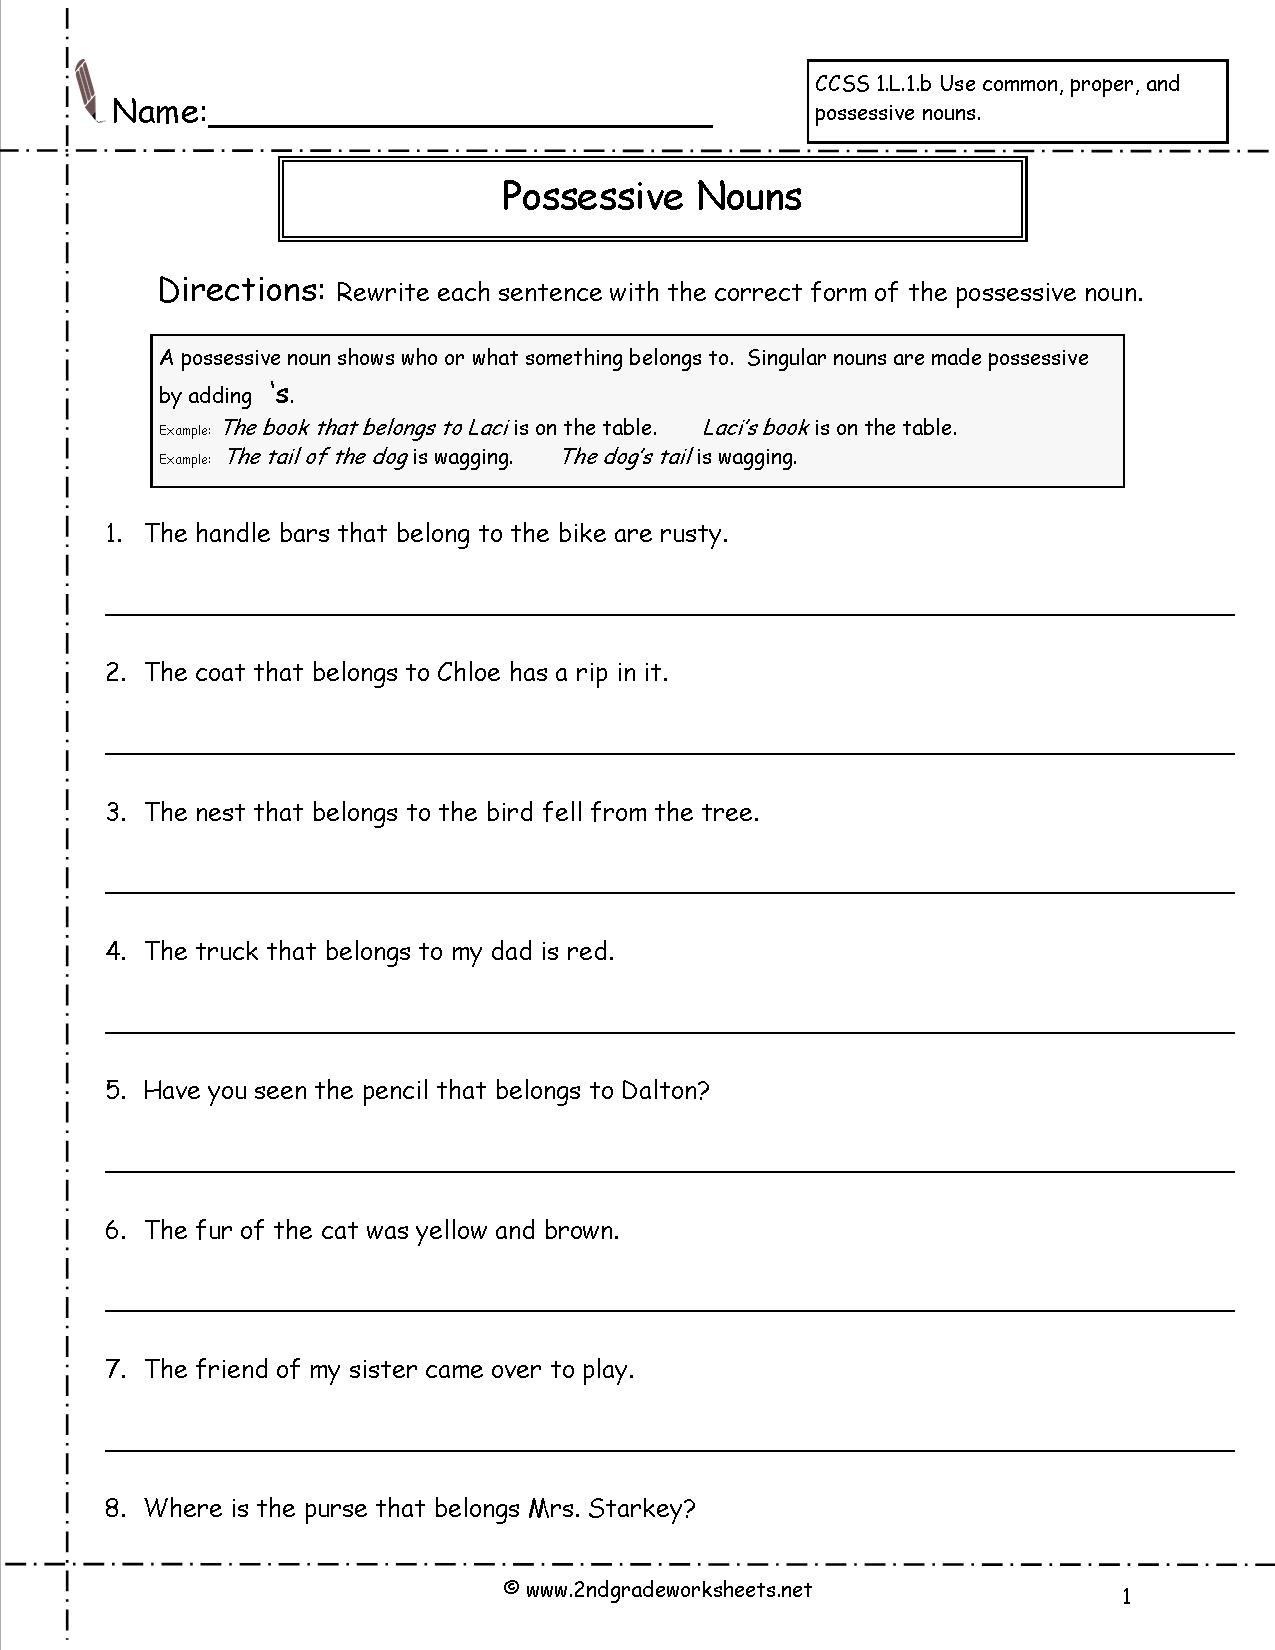 6th Grade Pronoun Worksheets Possessive Pronouns Worksheets 6th Grade